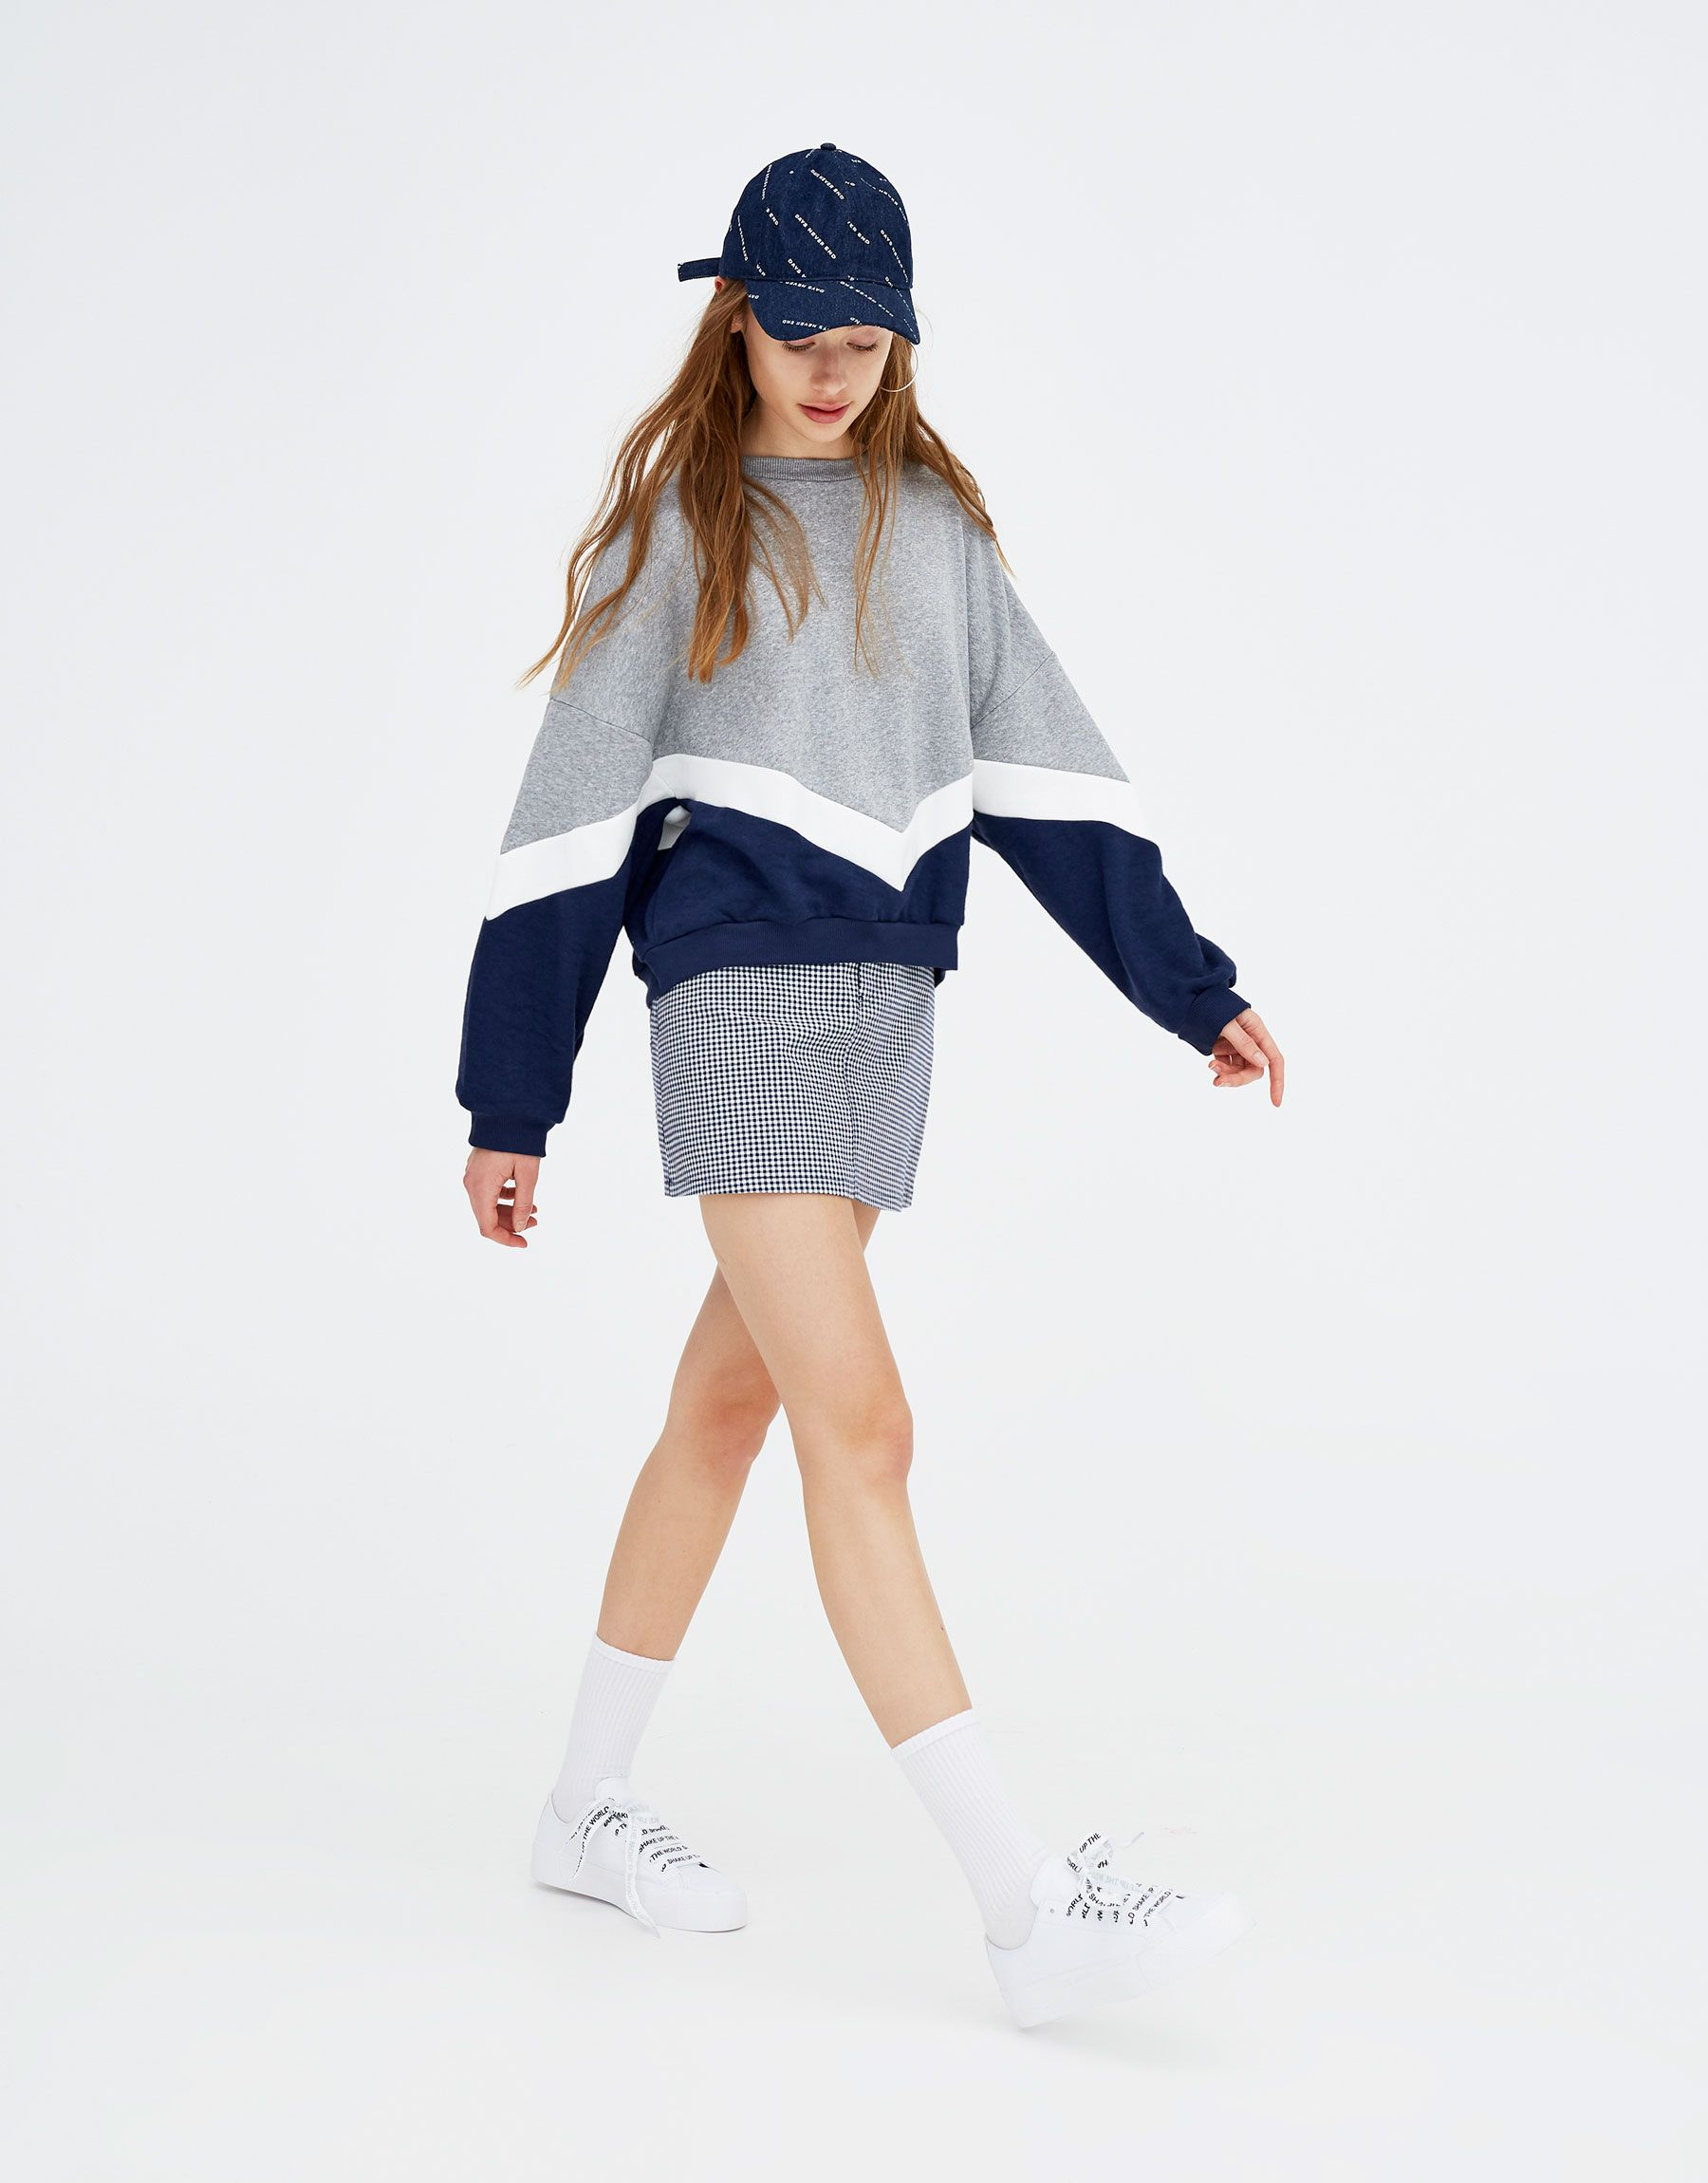 Pull Bear Woman New Blue Sweatshirt With V Shaped Panels Ink Blue 05593373 V2018 Two Piece Outfits Pants Cute Casual Outfits Hijabi Fashion Casual